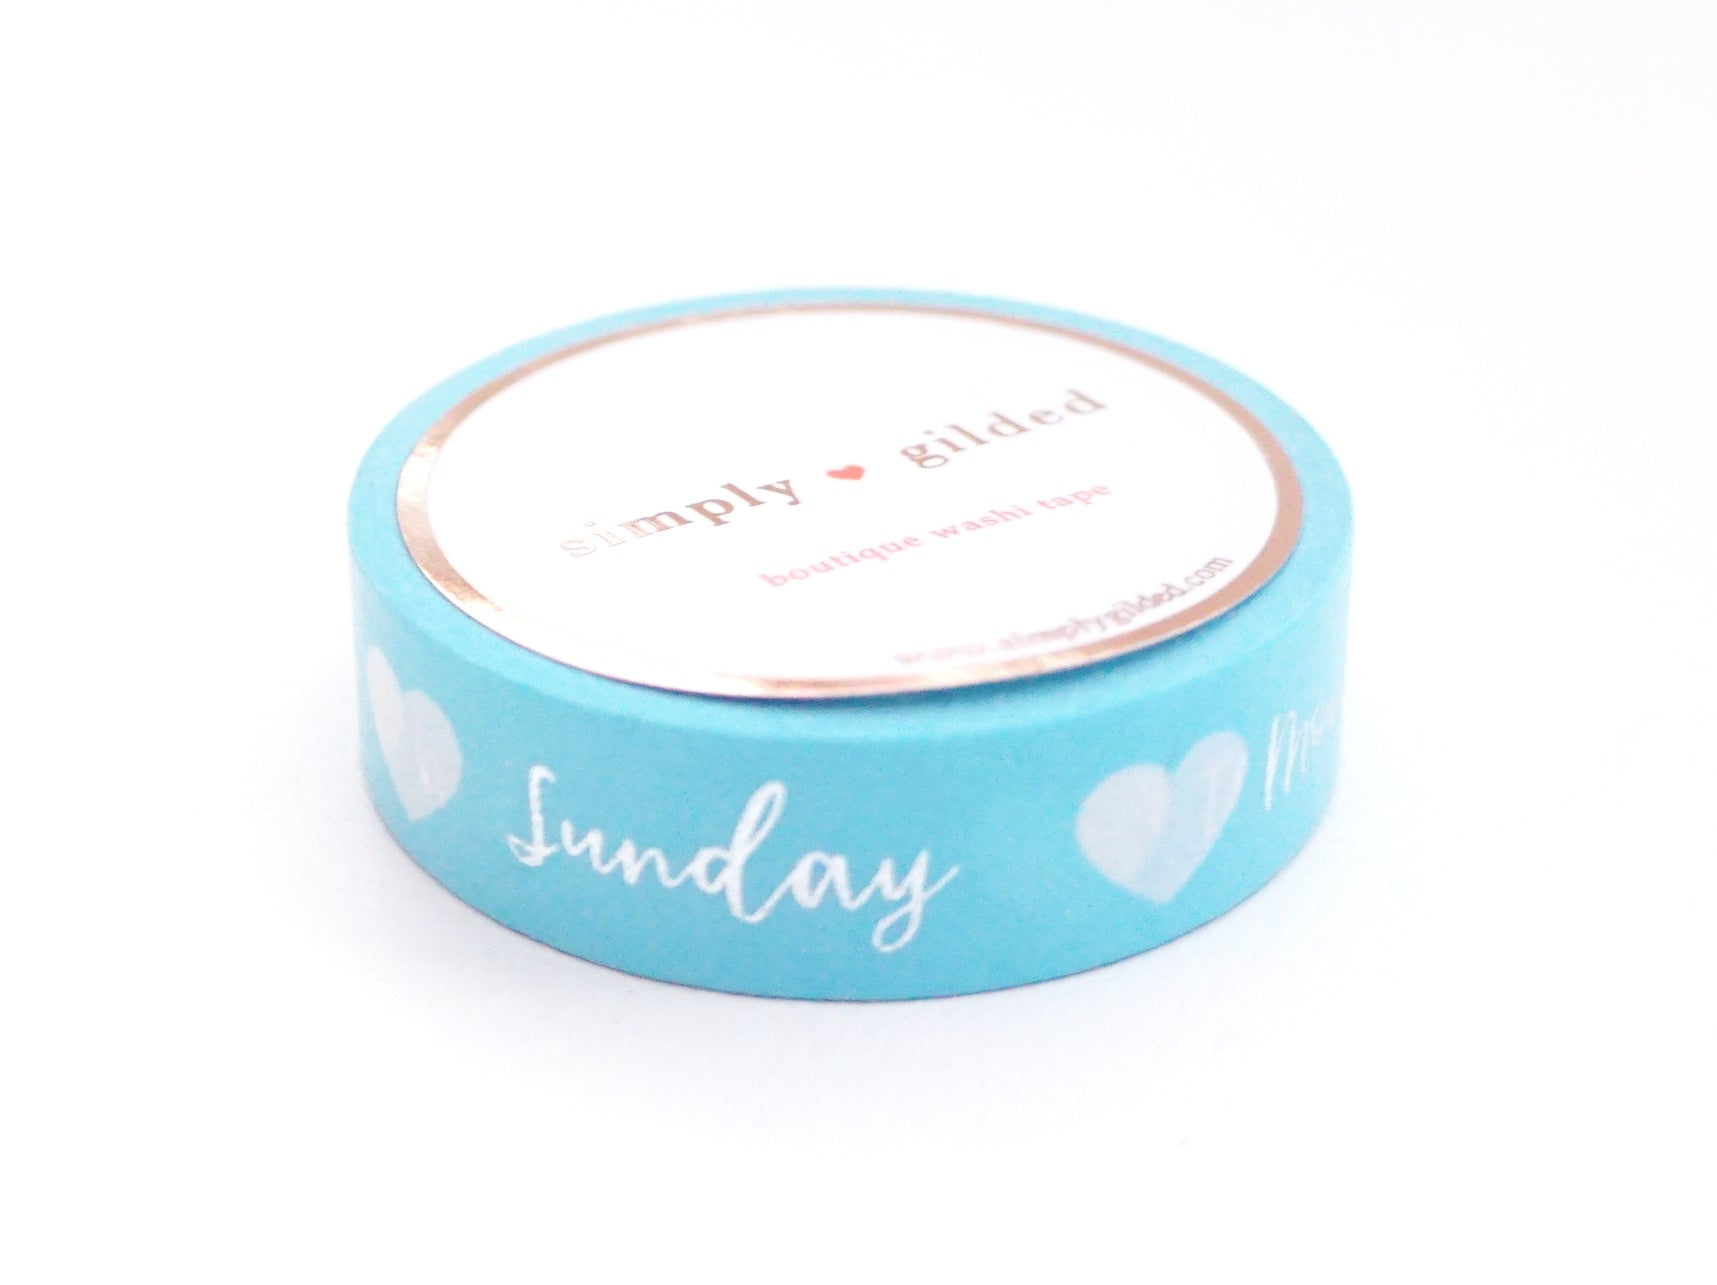 PERFORATED WASHI TAPE 13mm - Days of the Week SKY BLUE + silver foil (Spring Release)